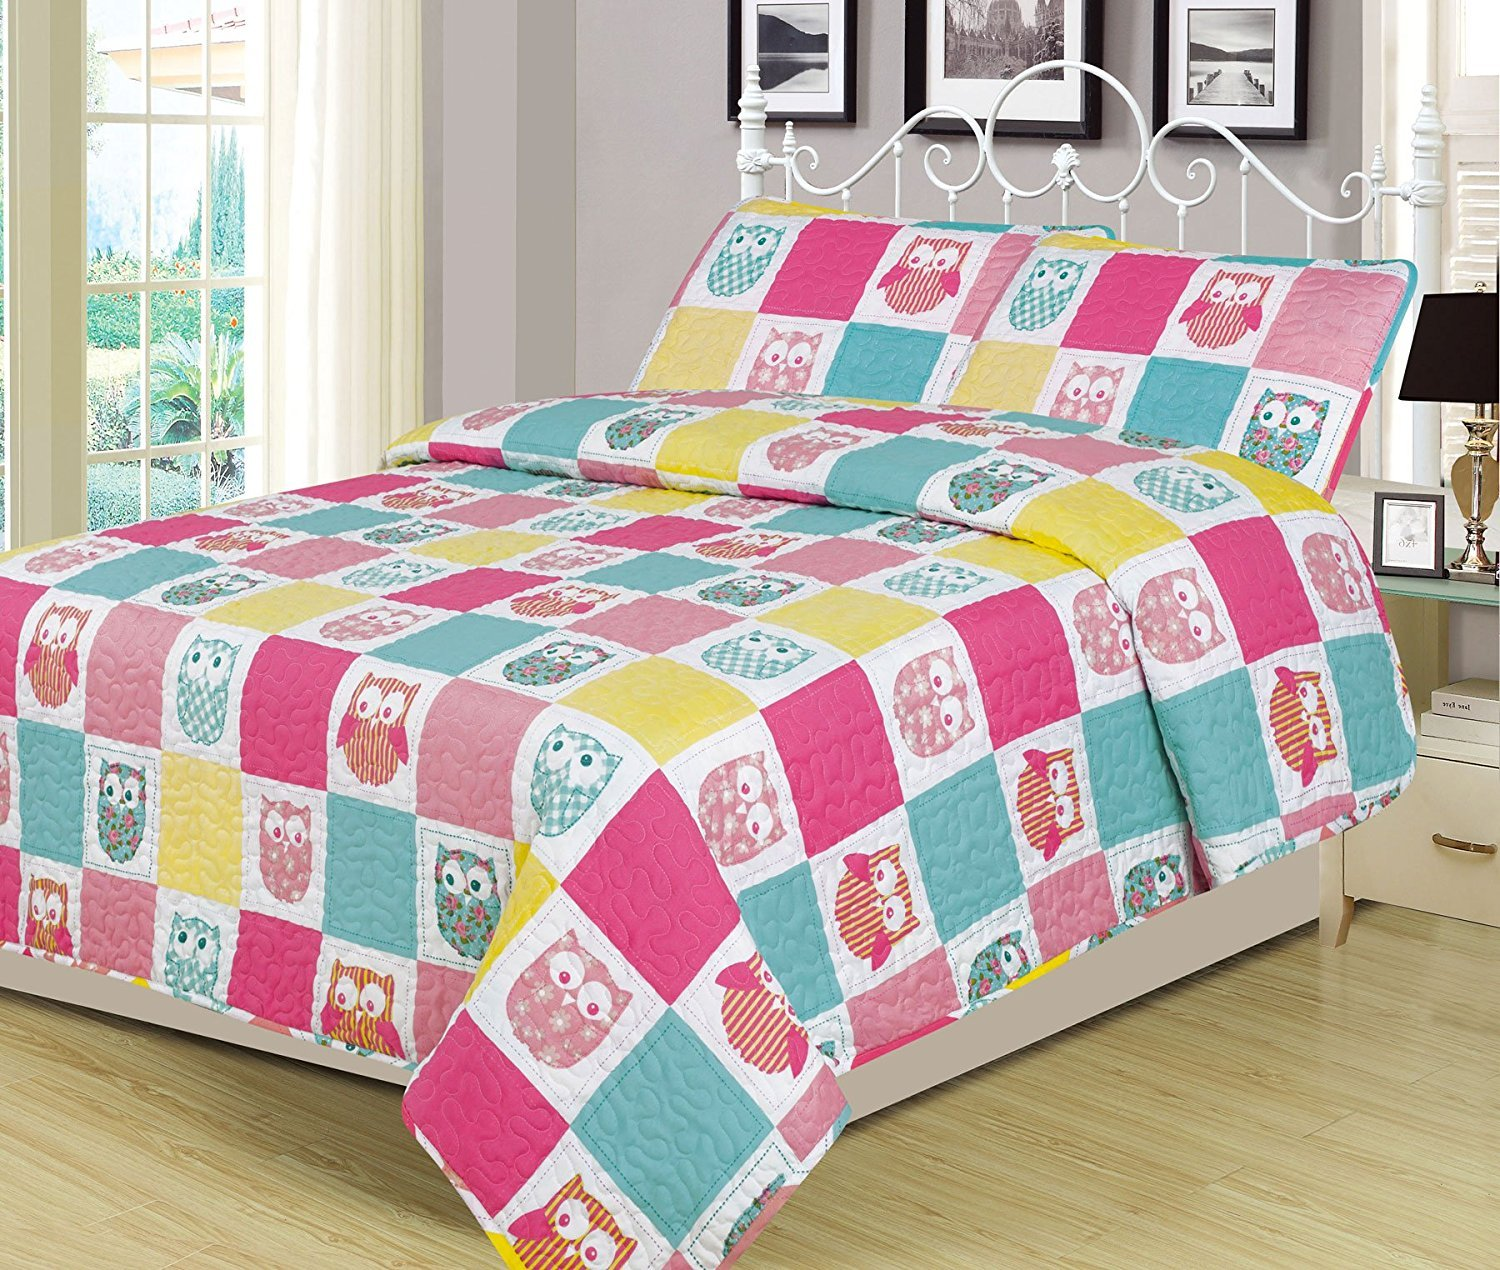 (Twin) Twin 2 Piece Owls Bed Set Bedding Quilt Bedspread, Girls Owl Patchwork Pink Blue Yellow B073WGFCCNツイン